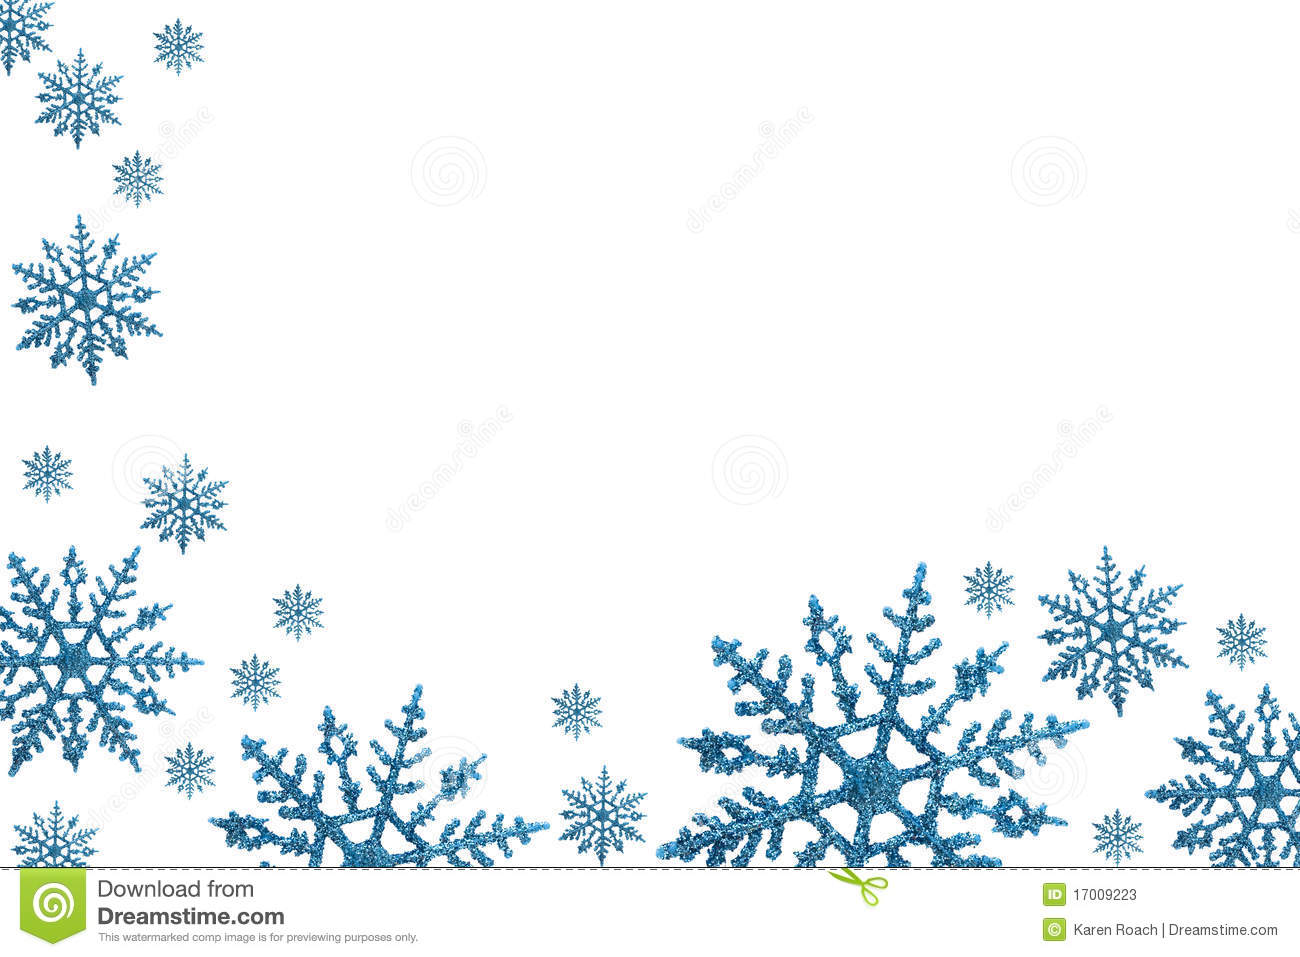 Holydays clipart snowflake Clipart winter Borders christmas Clipart